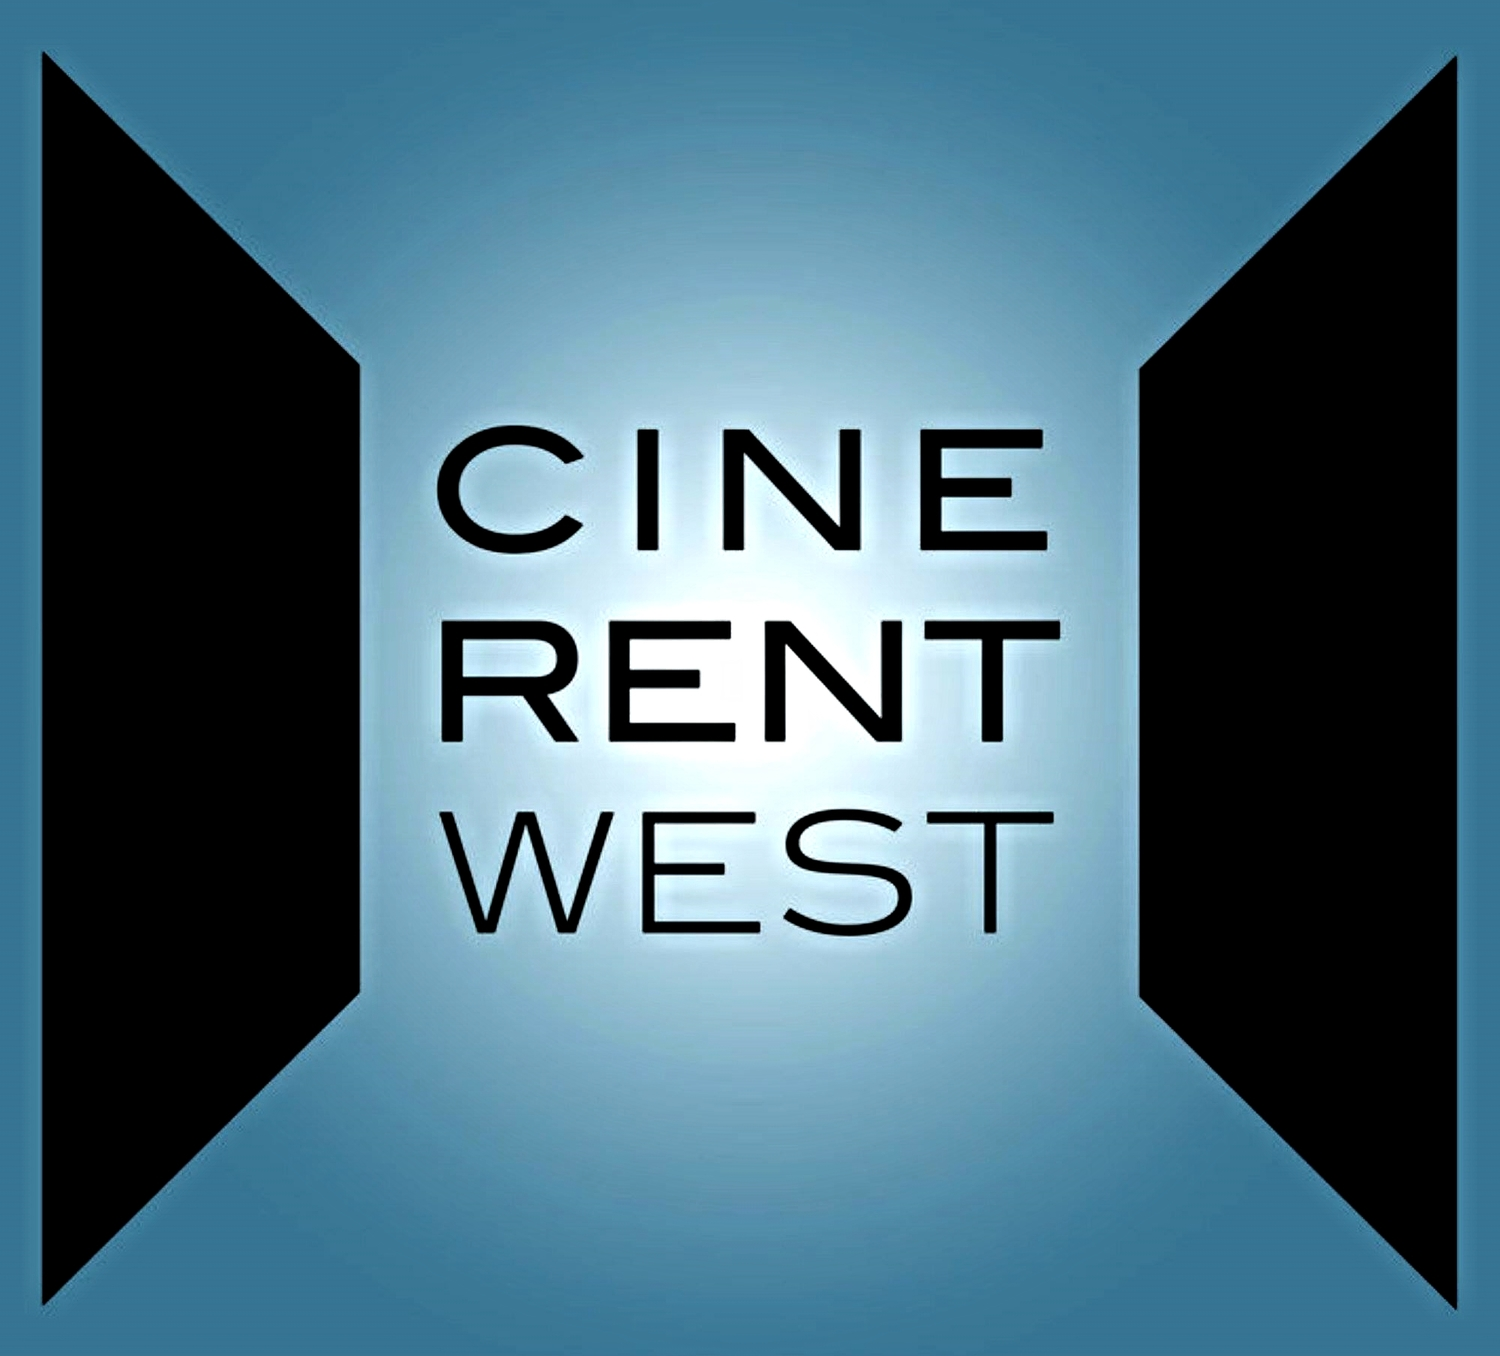 CINE RENT WEST